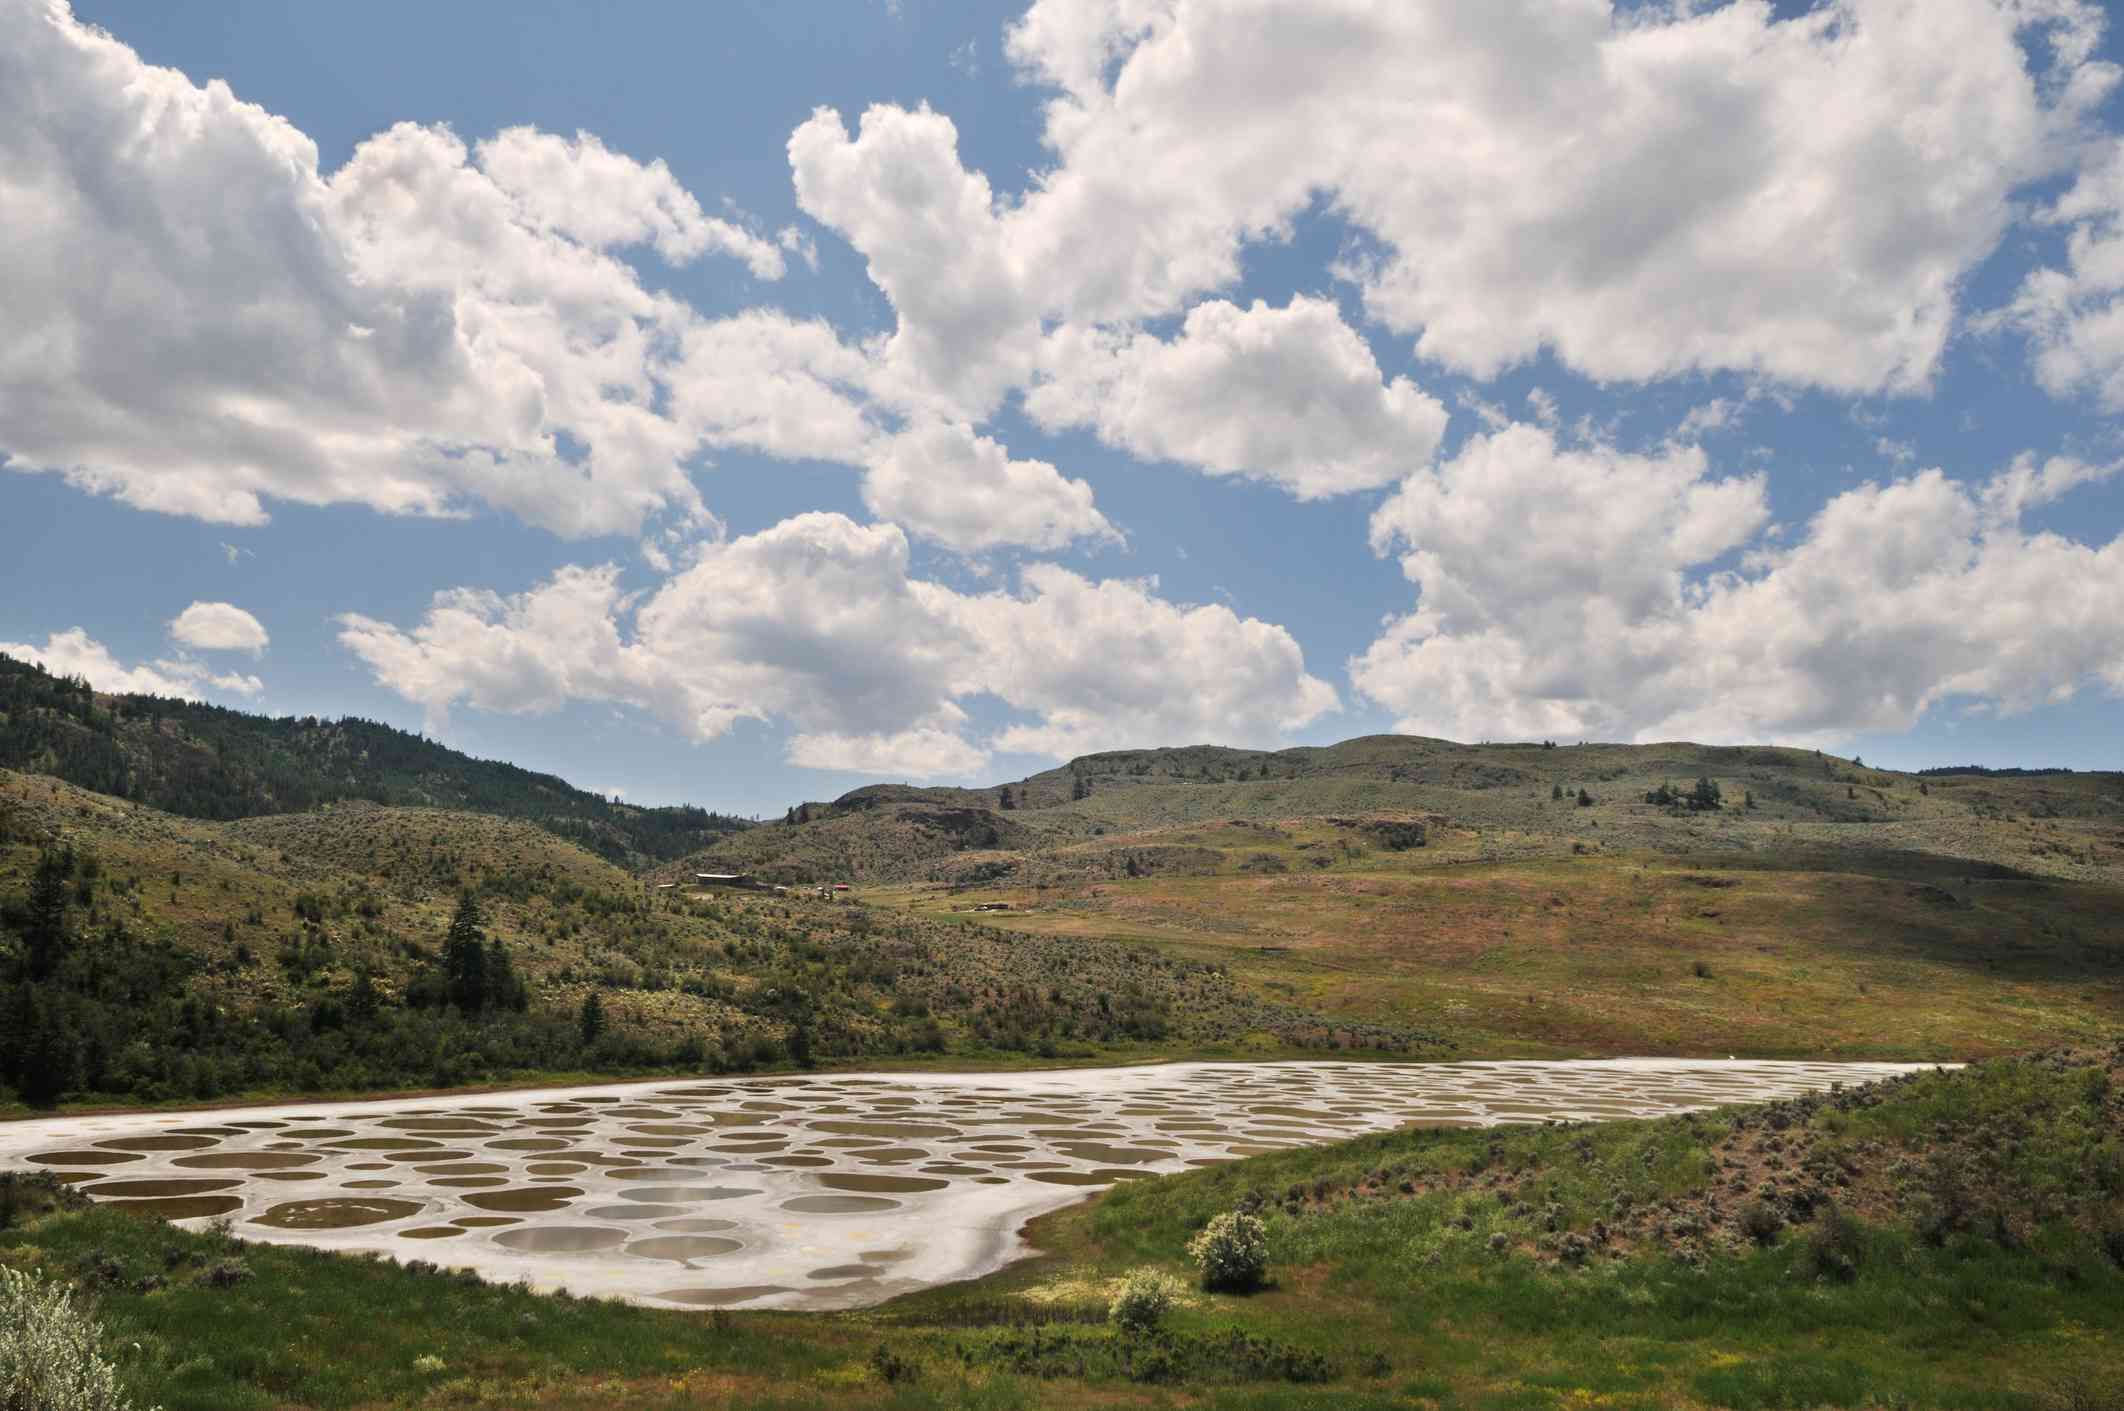 Mineral deposits form circles in a mostly evaporated lake